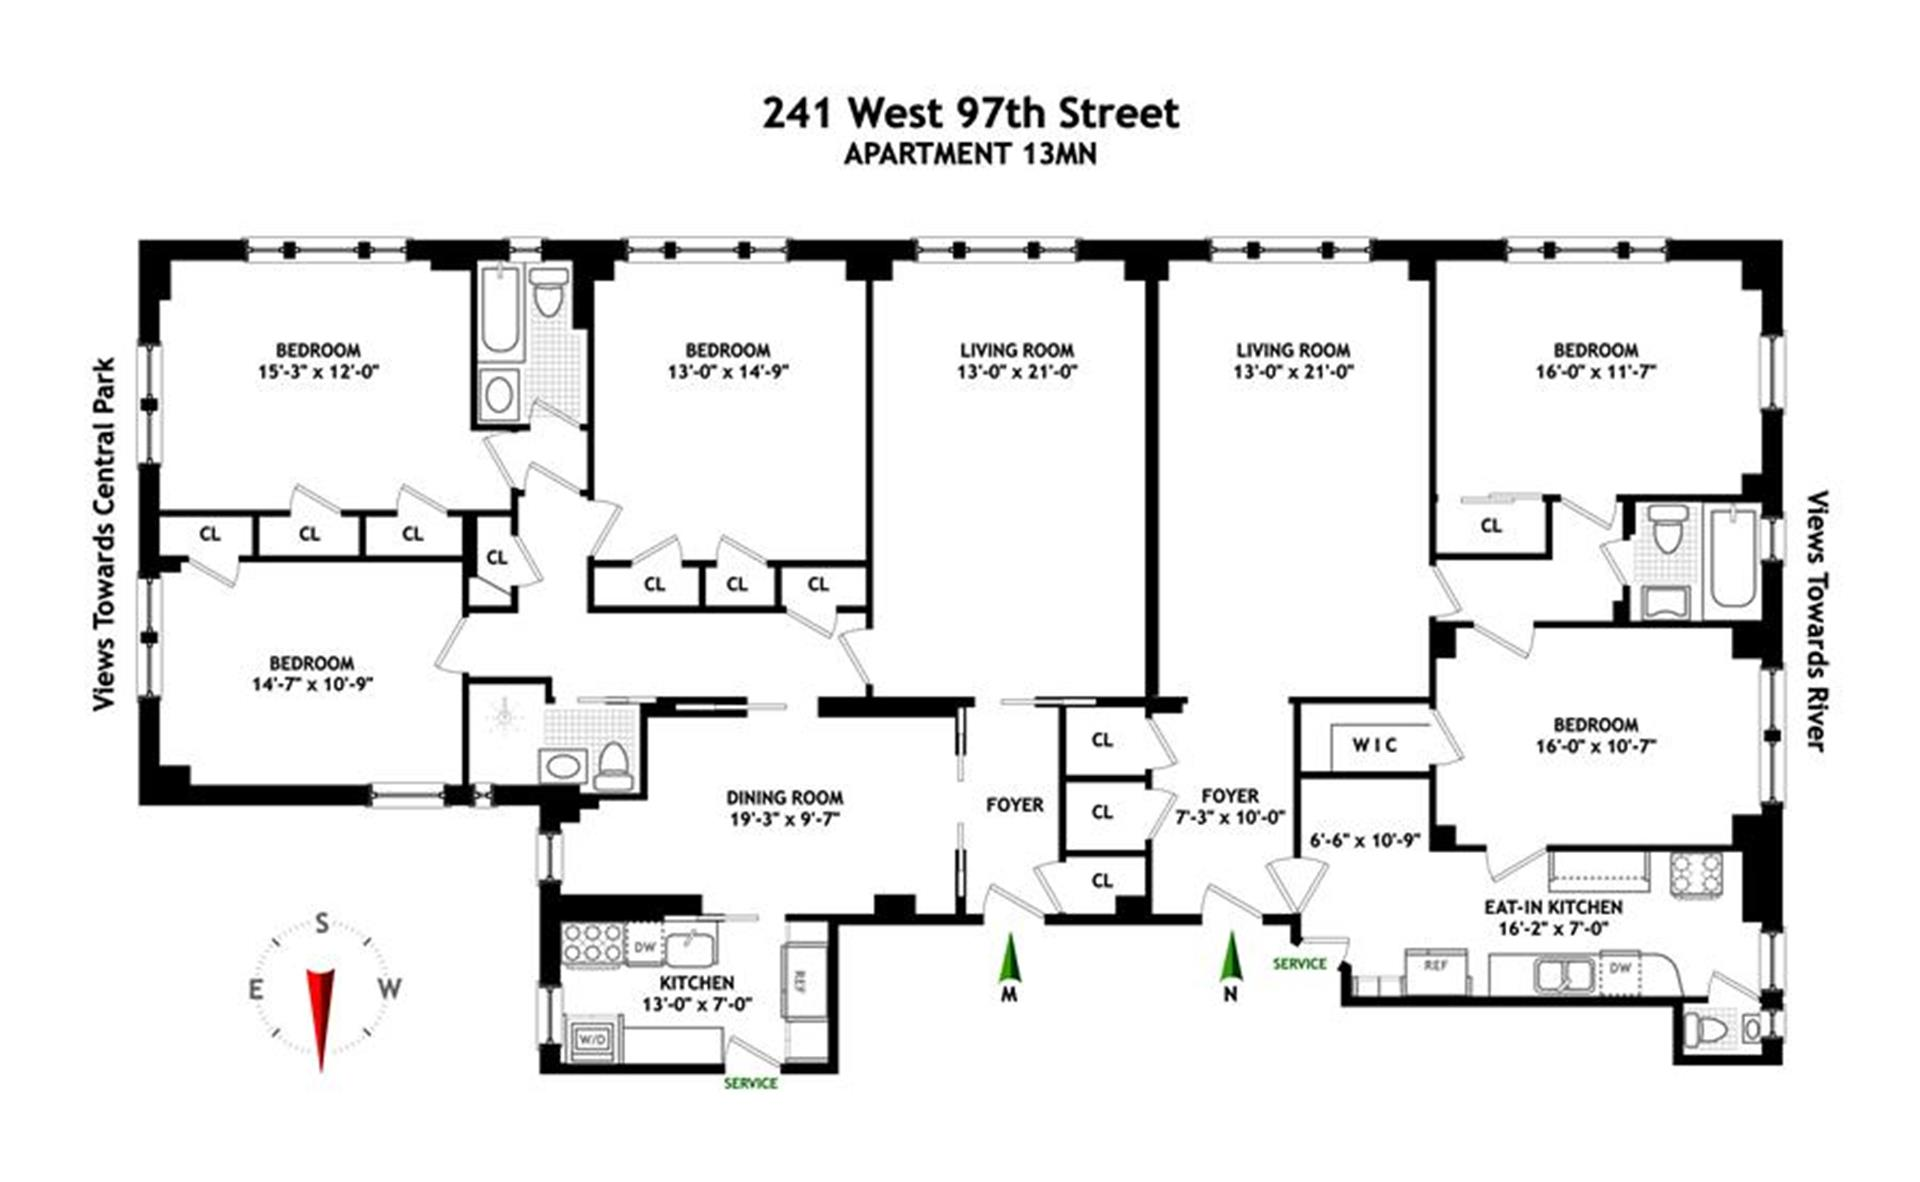 Floor plan of The Sabrina, 241 West 97th St, 13MN - Upper West Side, New York